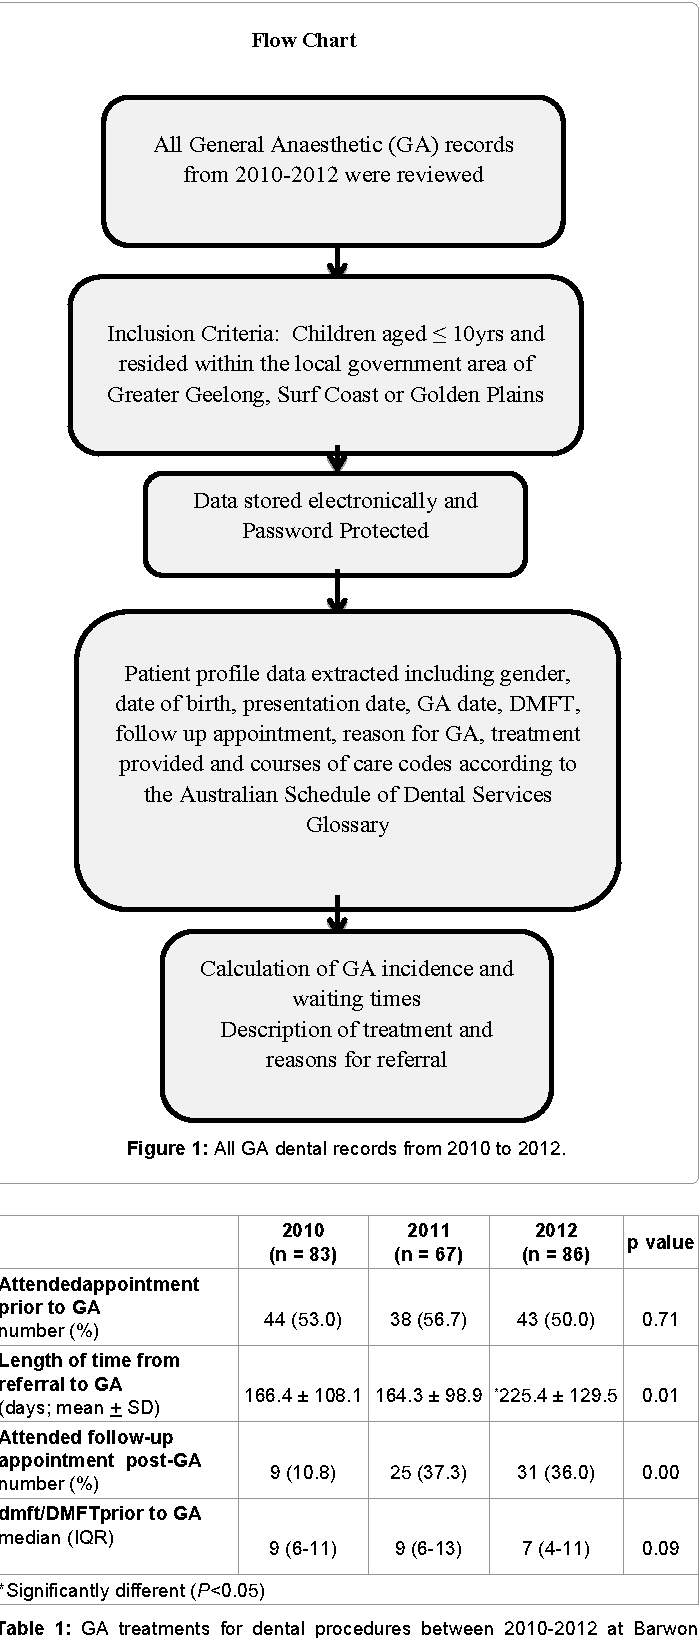 Figure 1: All GA dental records from 2010 to 2012.